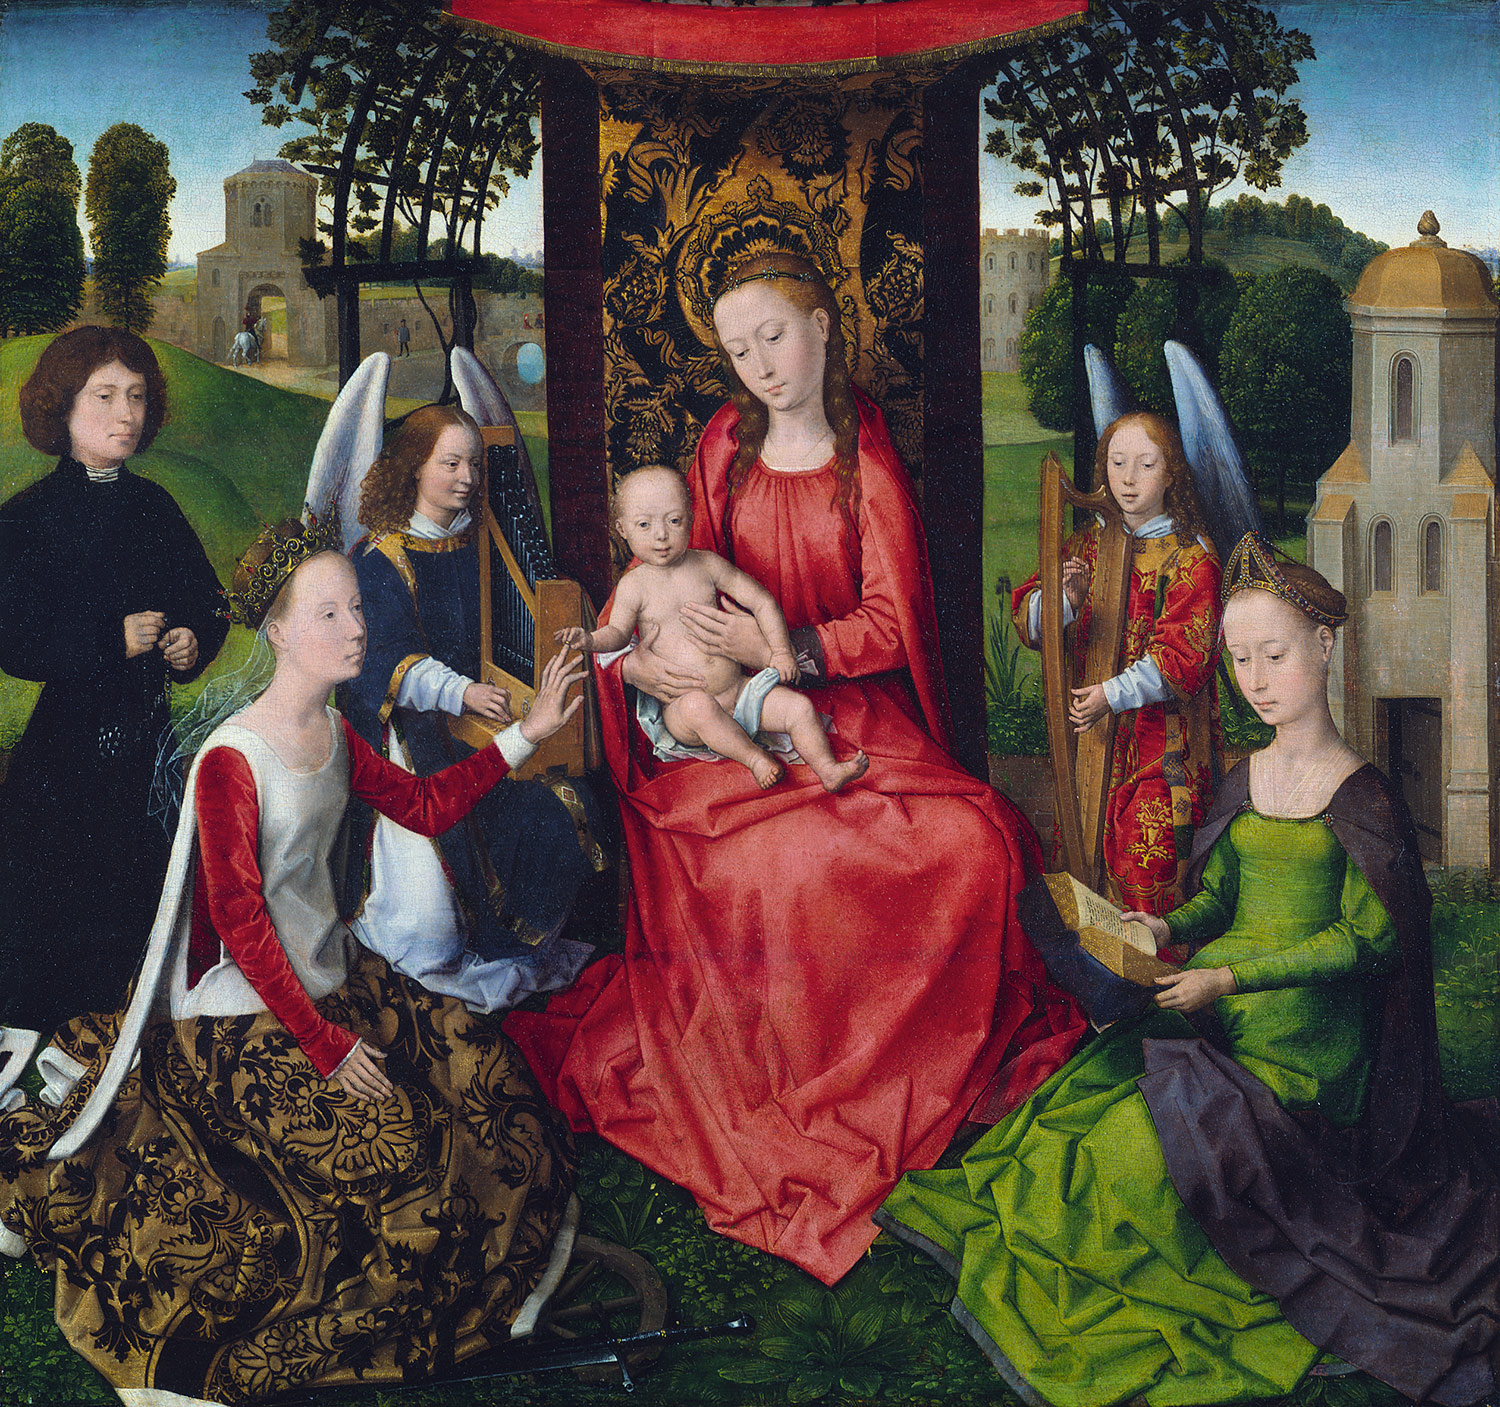 Virgin and Child with Saints Catherine of Alexandria and Barbara, by Hans Memling, 1479